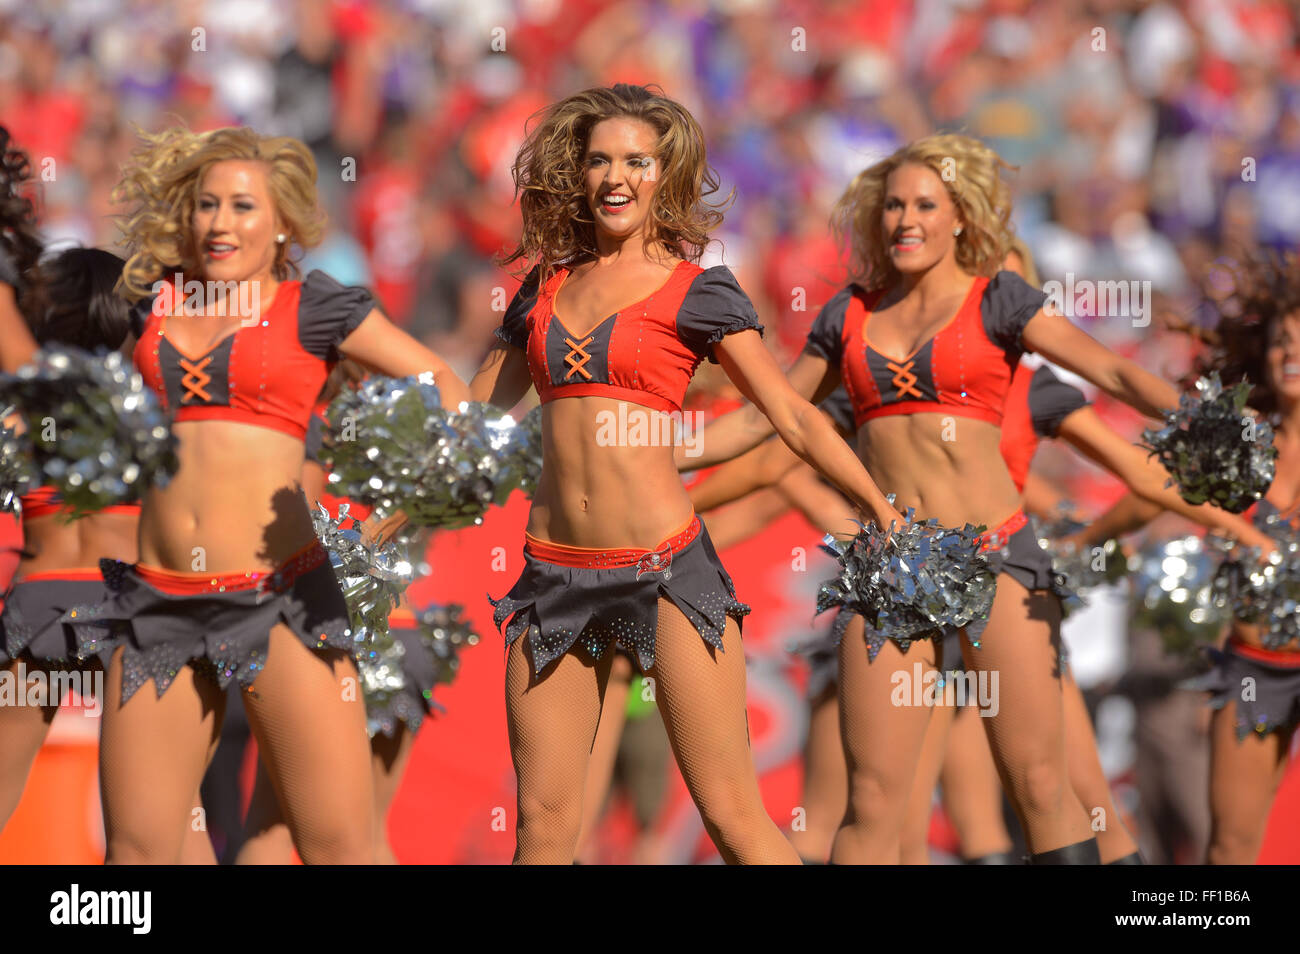 tampa fl usa 26th oct 2014 tampa bay buccaneers cheerleaders stock photo alamy https www alamy com stock photo tampa fl usa 26th oct 2014 tampa bay buccaneers cheerleaders during 95302434 html